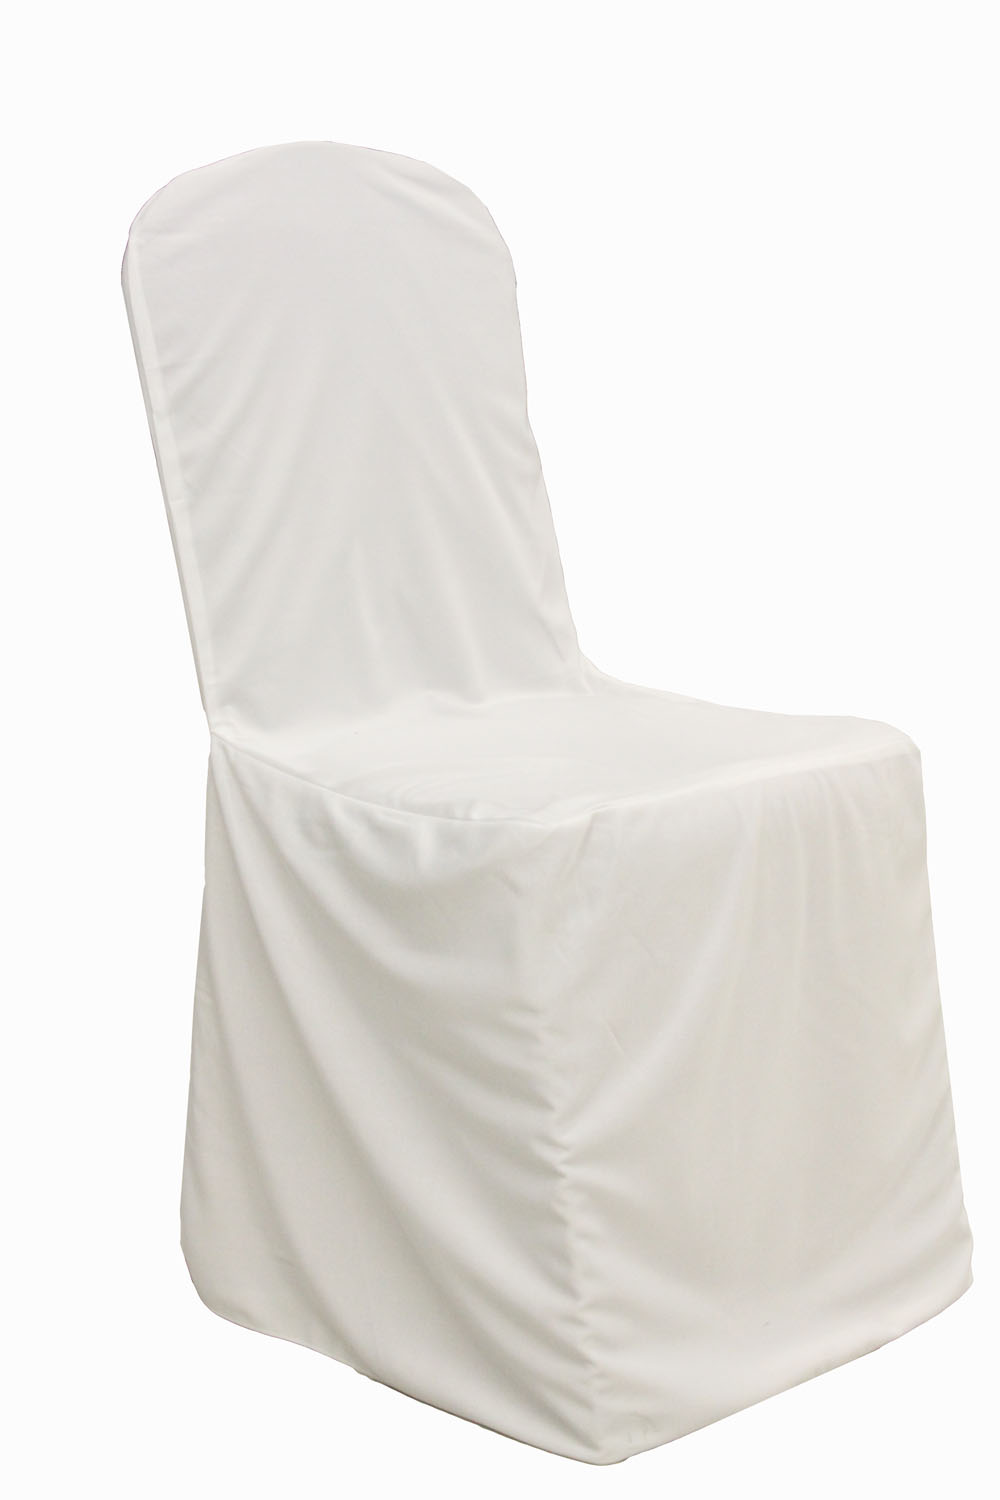 Banquet White Chair Cover